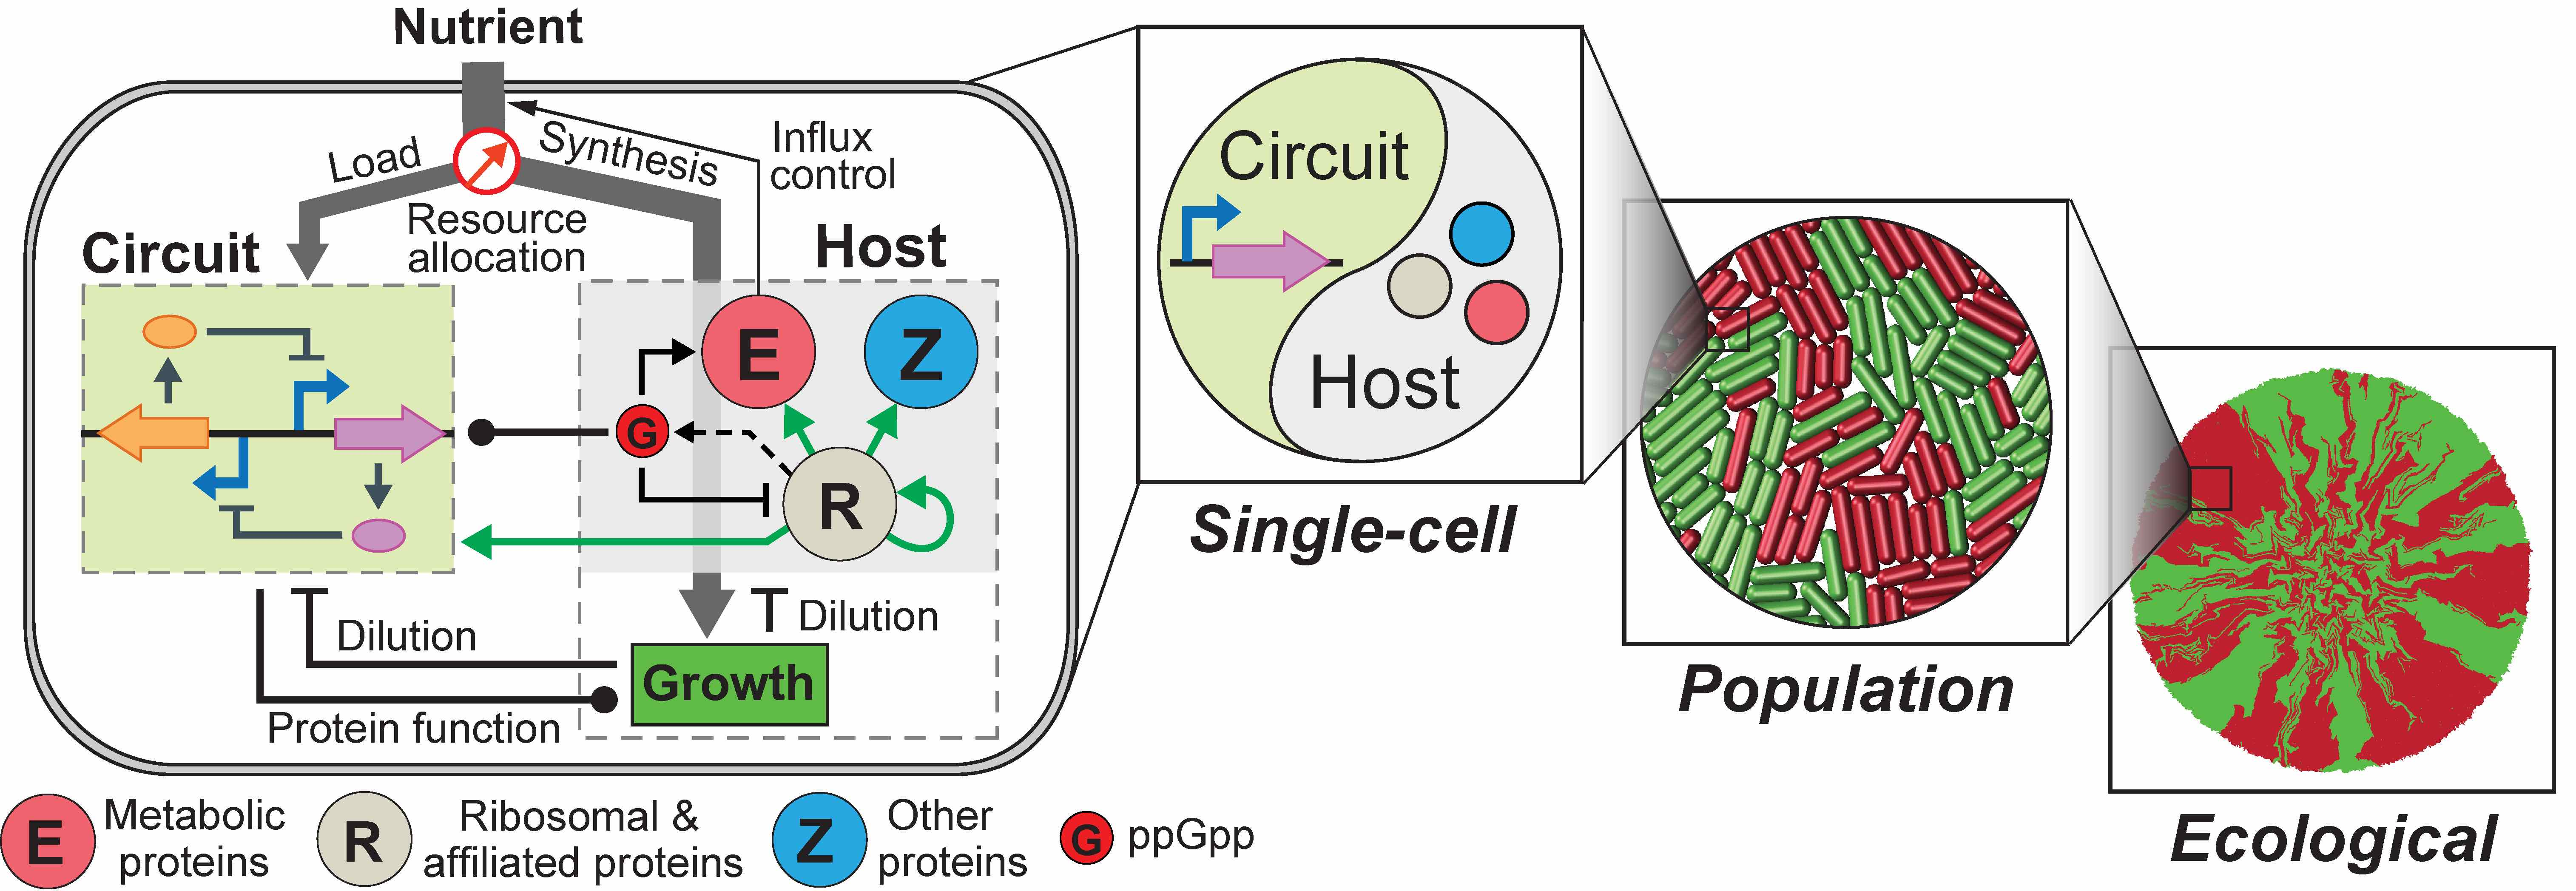 Building A Predicative Tool For Synthetic Gene Networks Nature Design Electrical Circuit Similar To Circuits Used In Numerous Electronic Devices Genetic Have Been Created